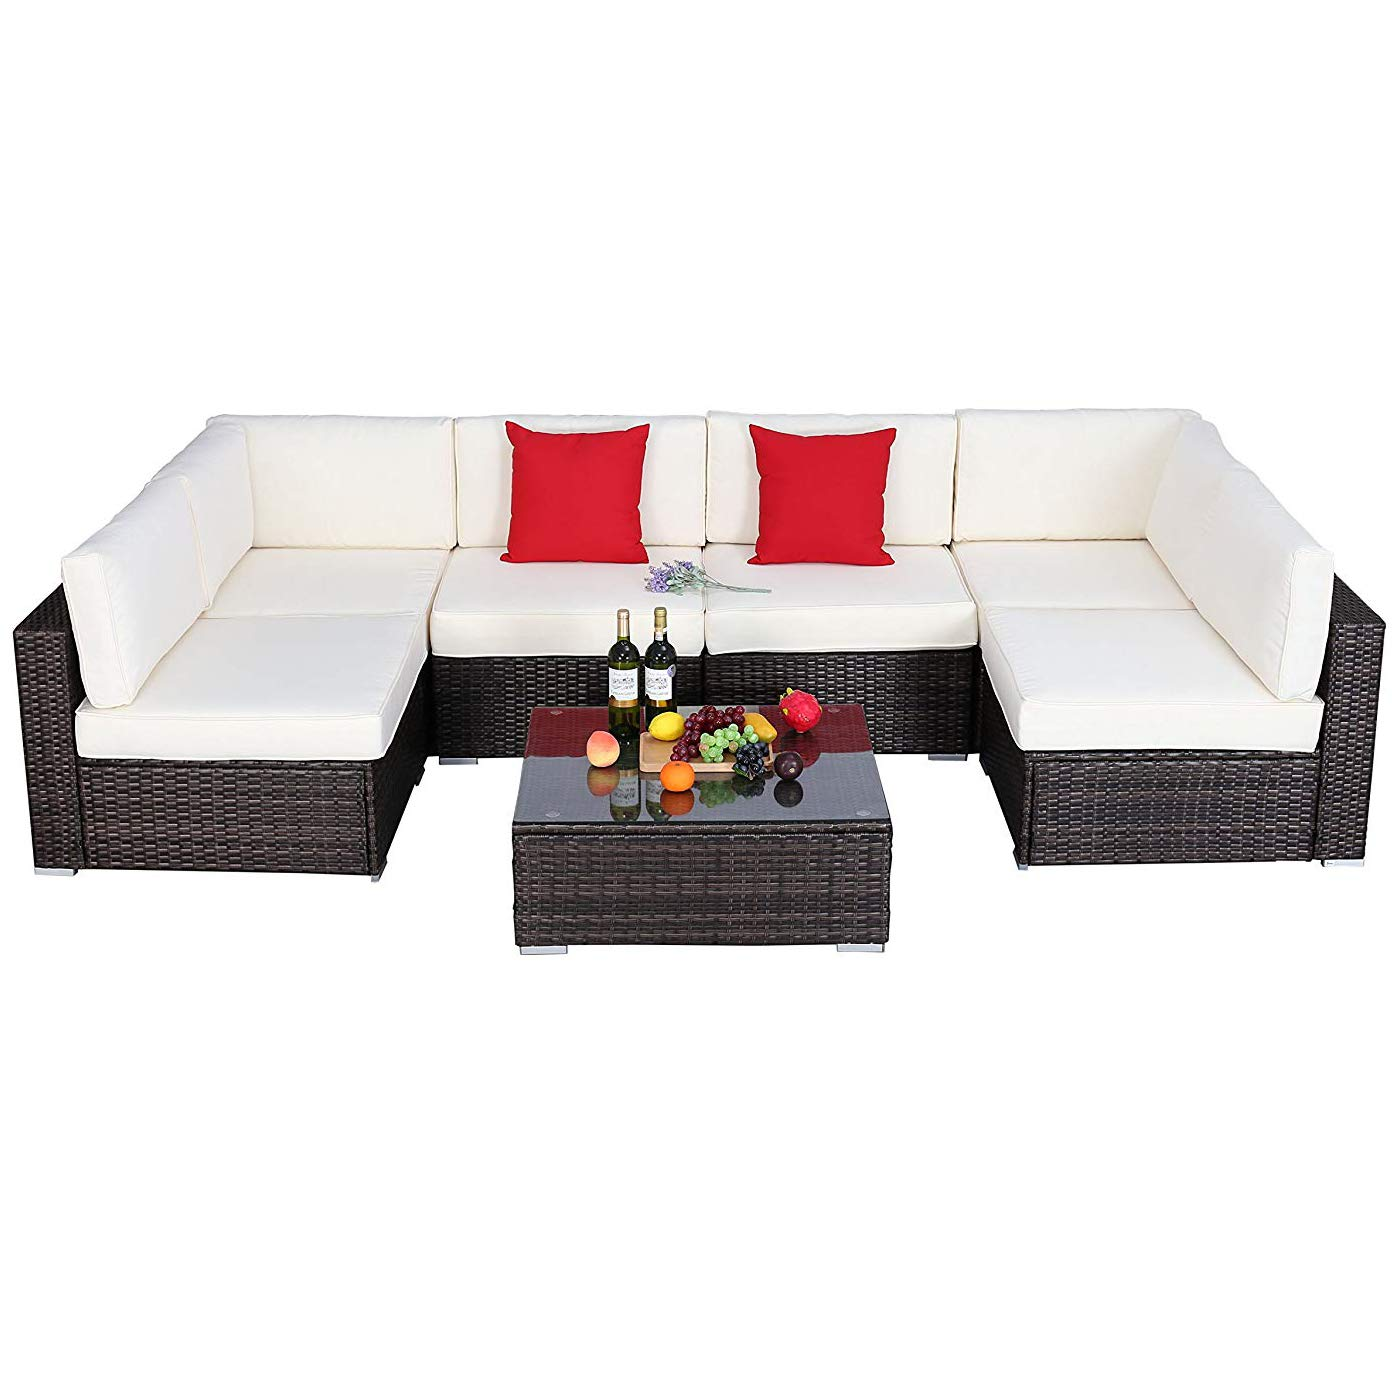 OC Orange-Casual 3 Piece Patio Wicker Outdoor Furniture Set, Rattan Conversation Set, Space Saving, for Garden, Lawn, Balcony